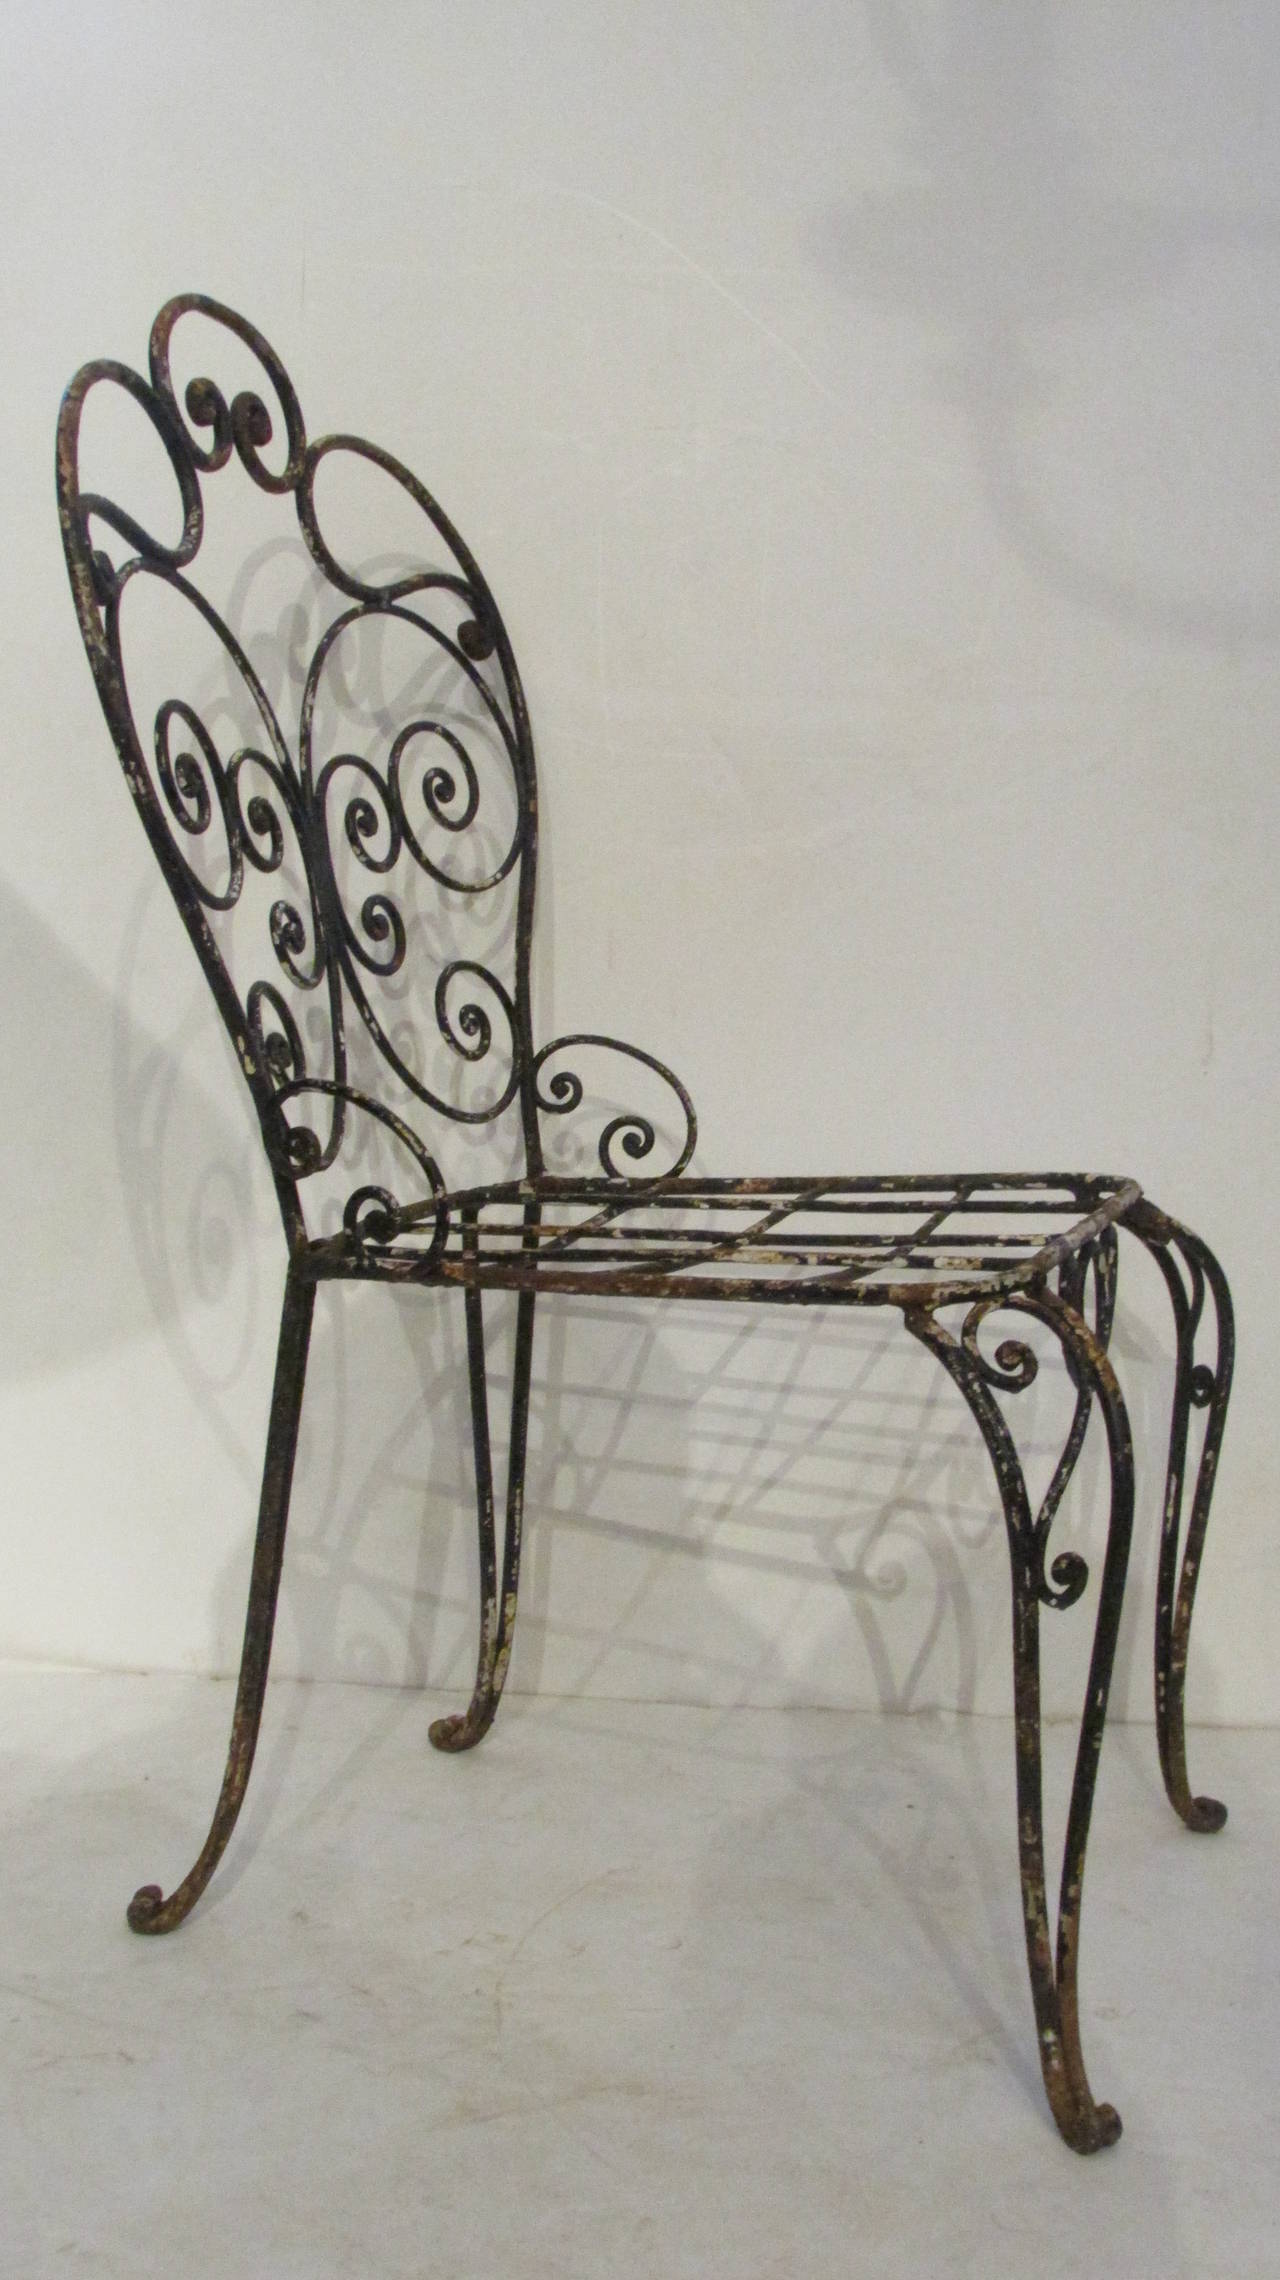 20th Century 1940s French Iron Garden Chair For Sale